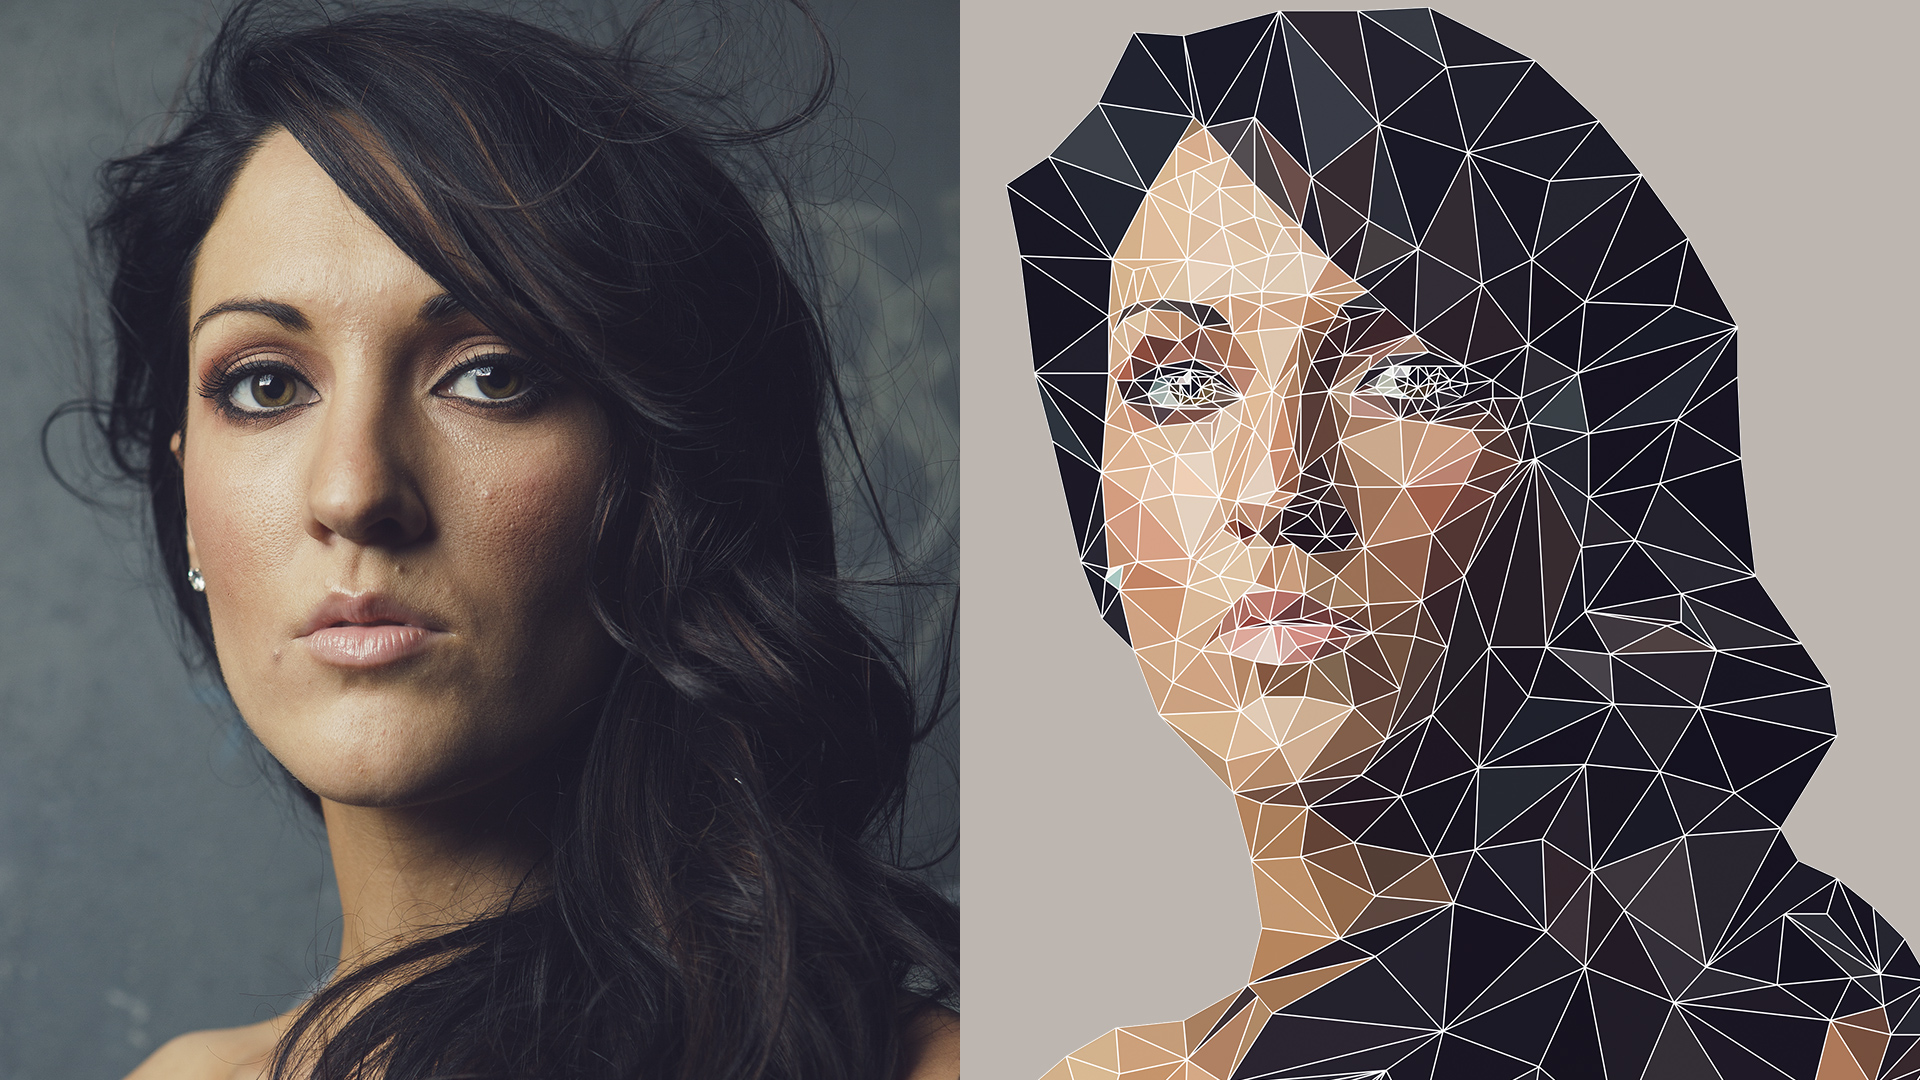 Low Poly Geometric Effect in Photoshop ONLY!